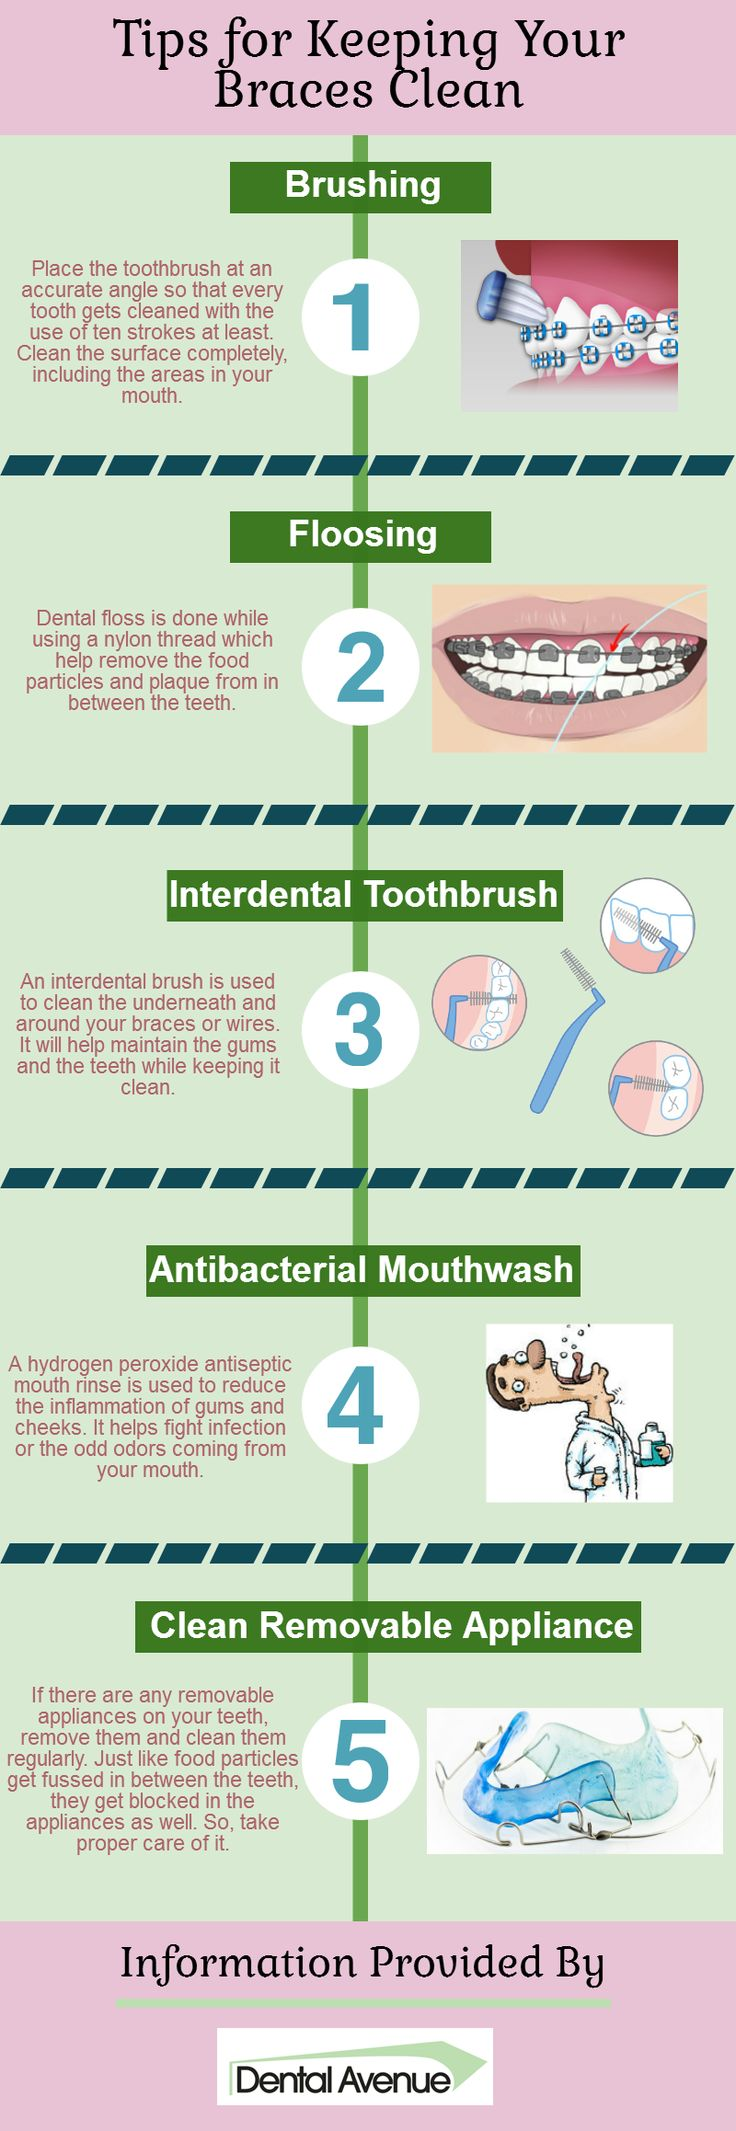 The way, keeping your teeth clean and healthy is important, it is also important that you take proper care of the braces applied to your teeth. There are several things that can be done at regular intervals. Go through this infographic to know what all it includes, keeping the braces clean.